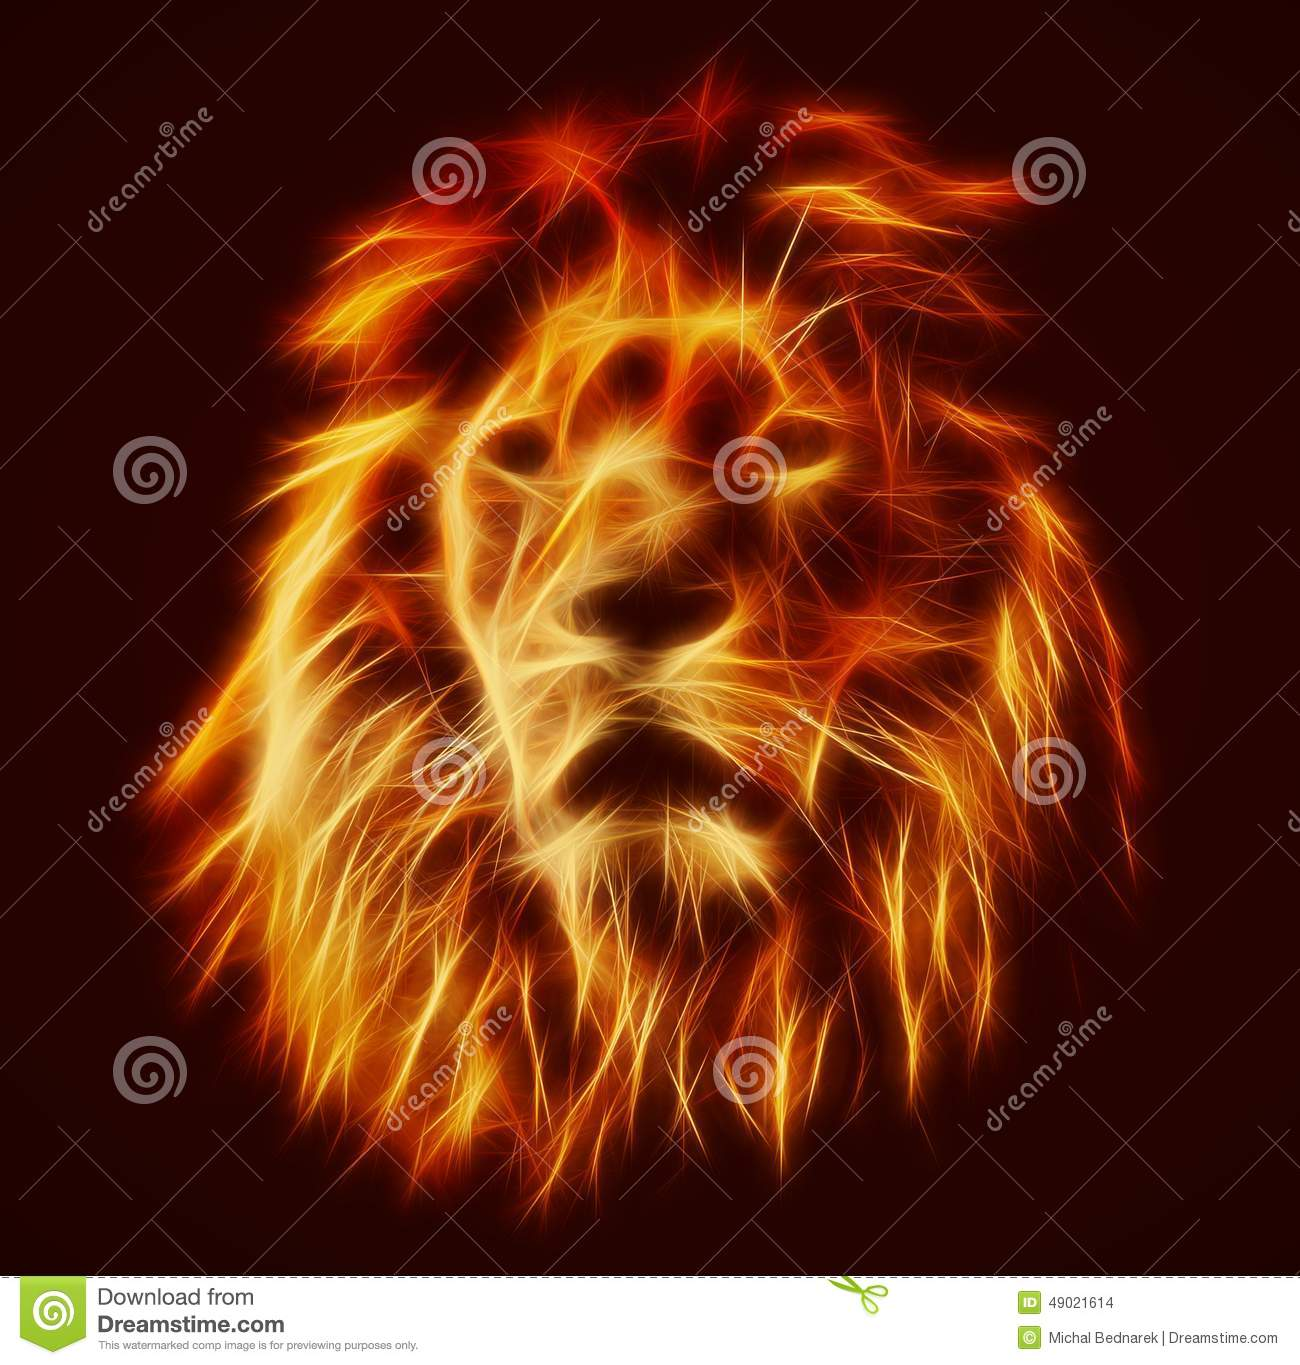 ... Artistic Lion Portrait. Fire Flames Fur Stock Photo - Image: 49021614